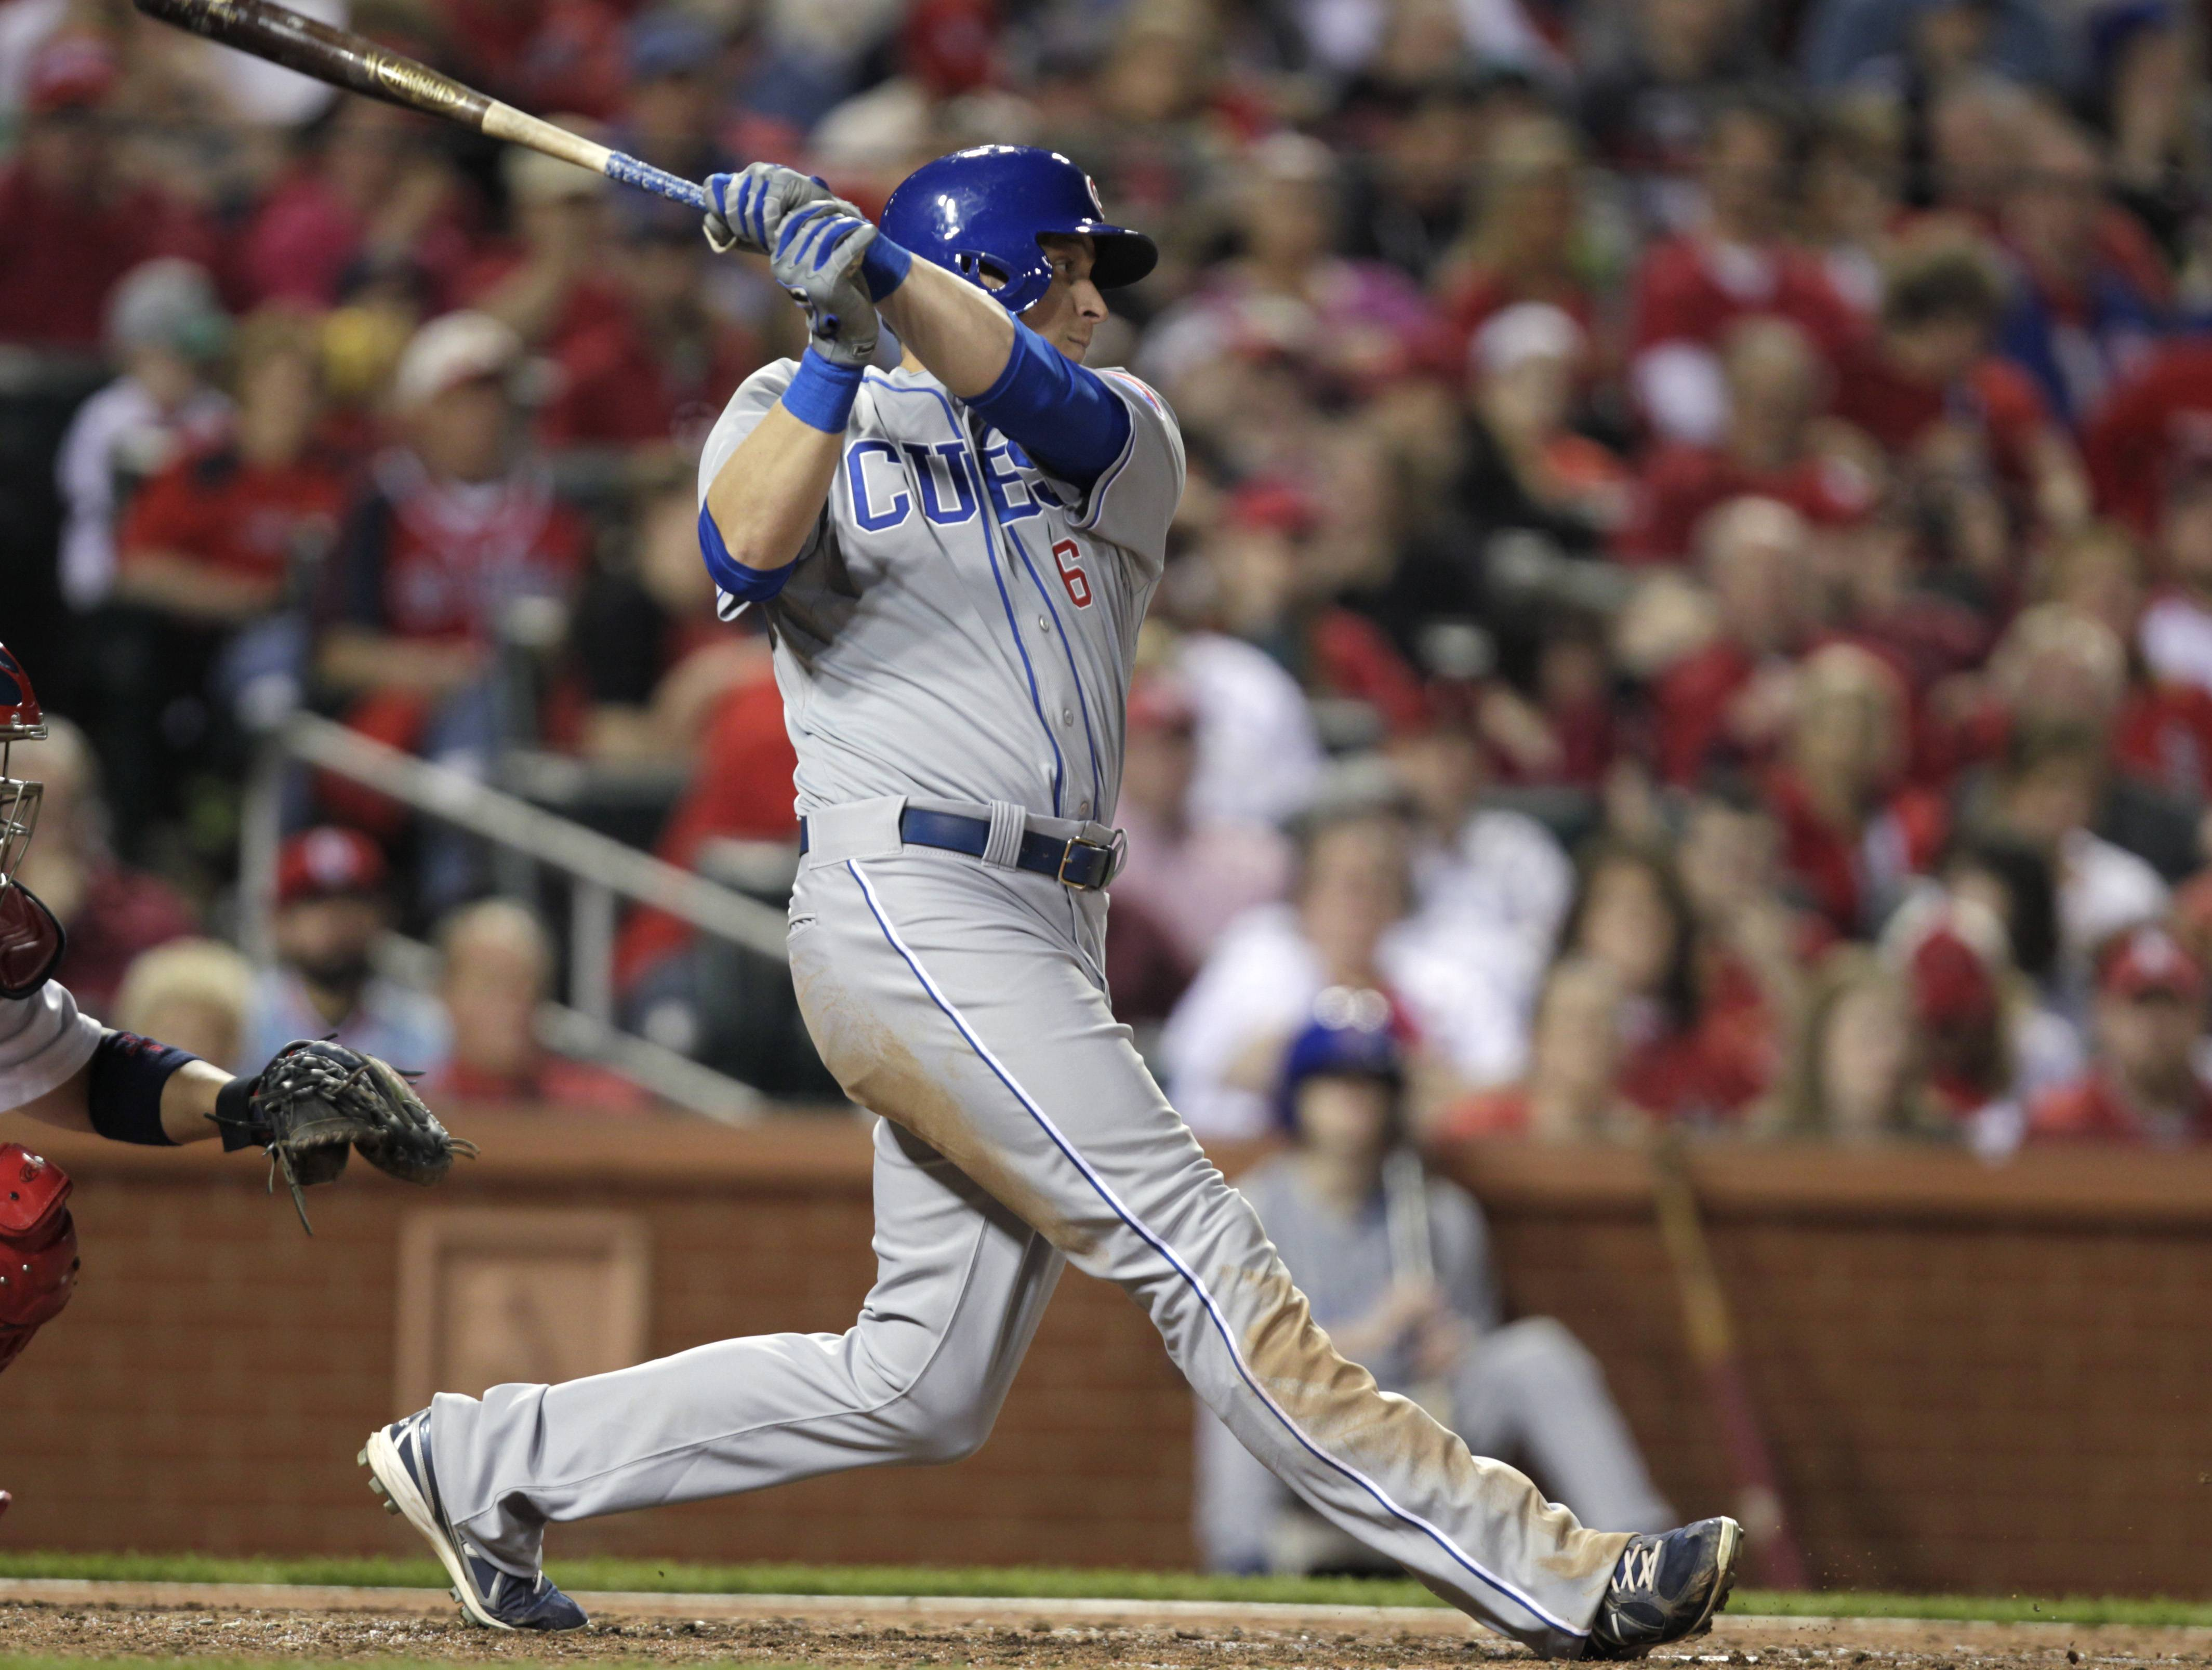 Chicago Cubs' Ryan Sweeney follows through on an RBI single in the seventh inning of a baseball game against the St. Louis Cardinals, Friday, April 11, 2014, in St. Louis.